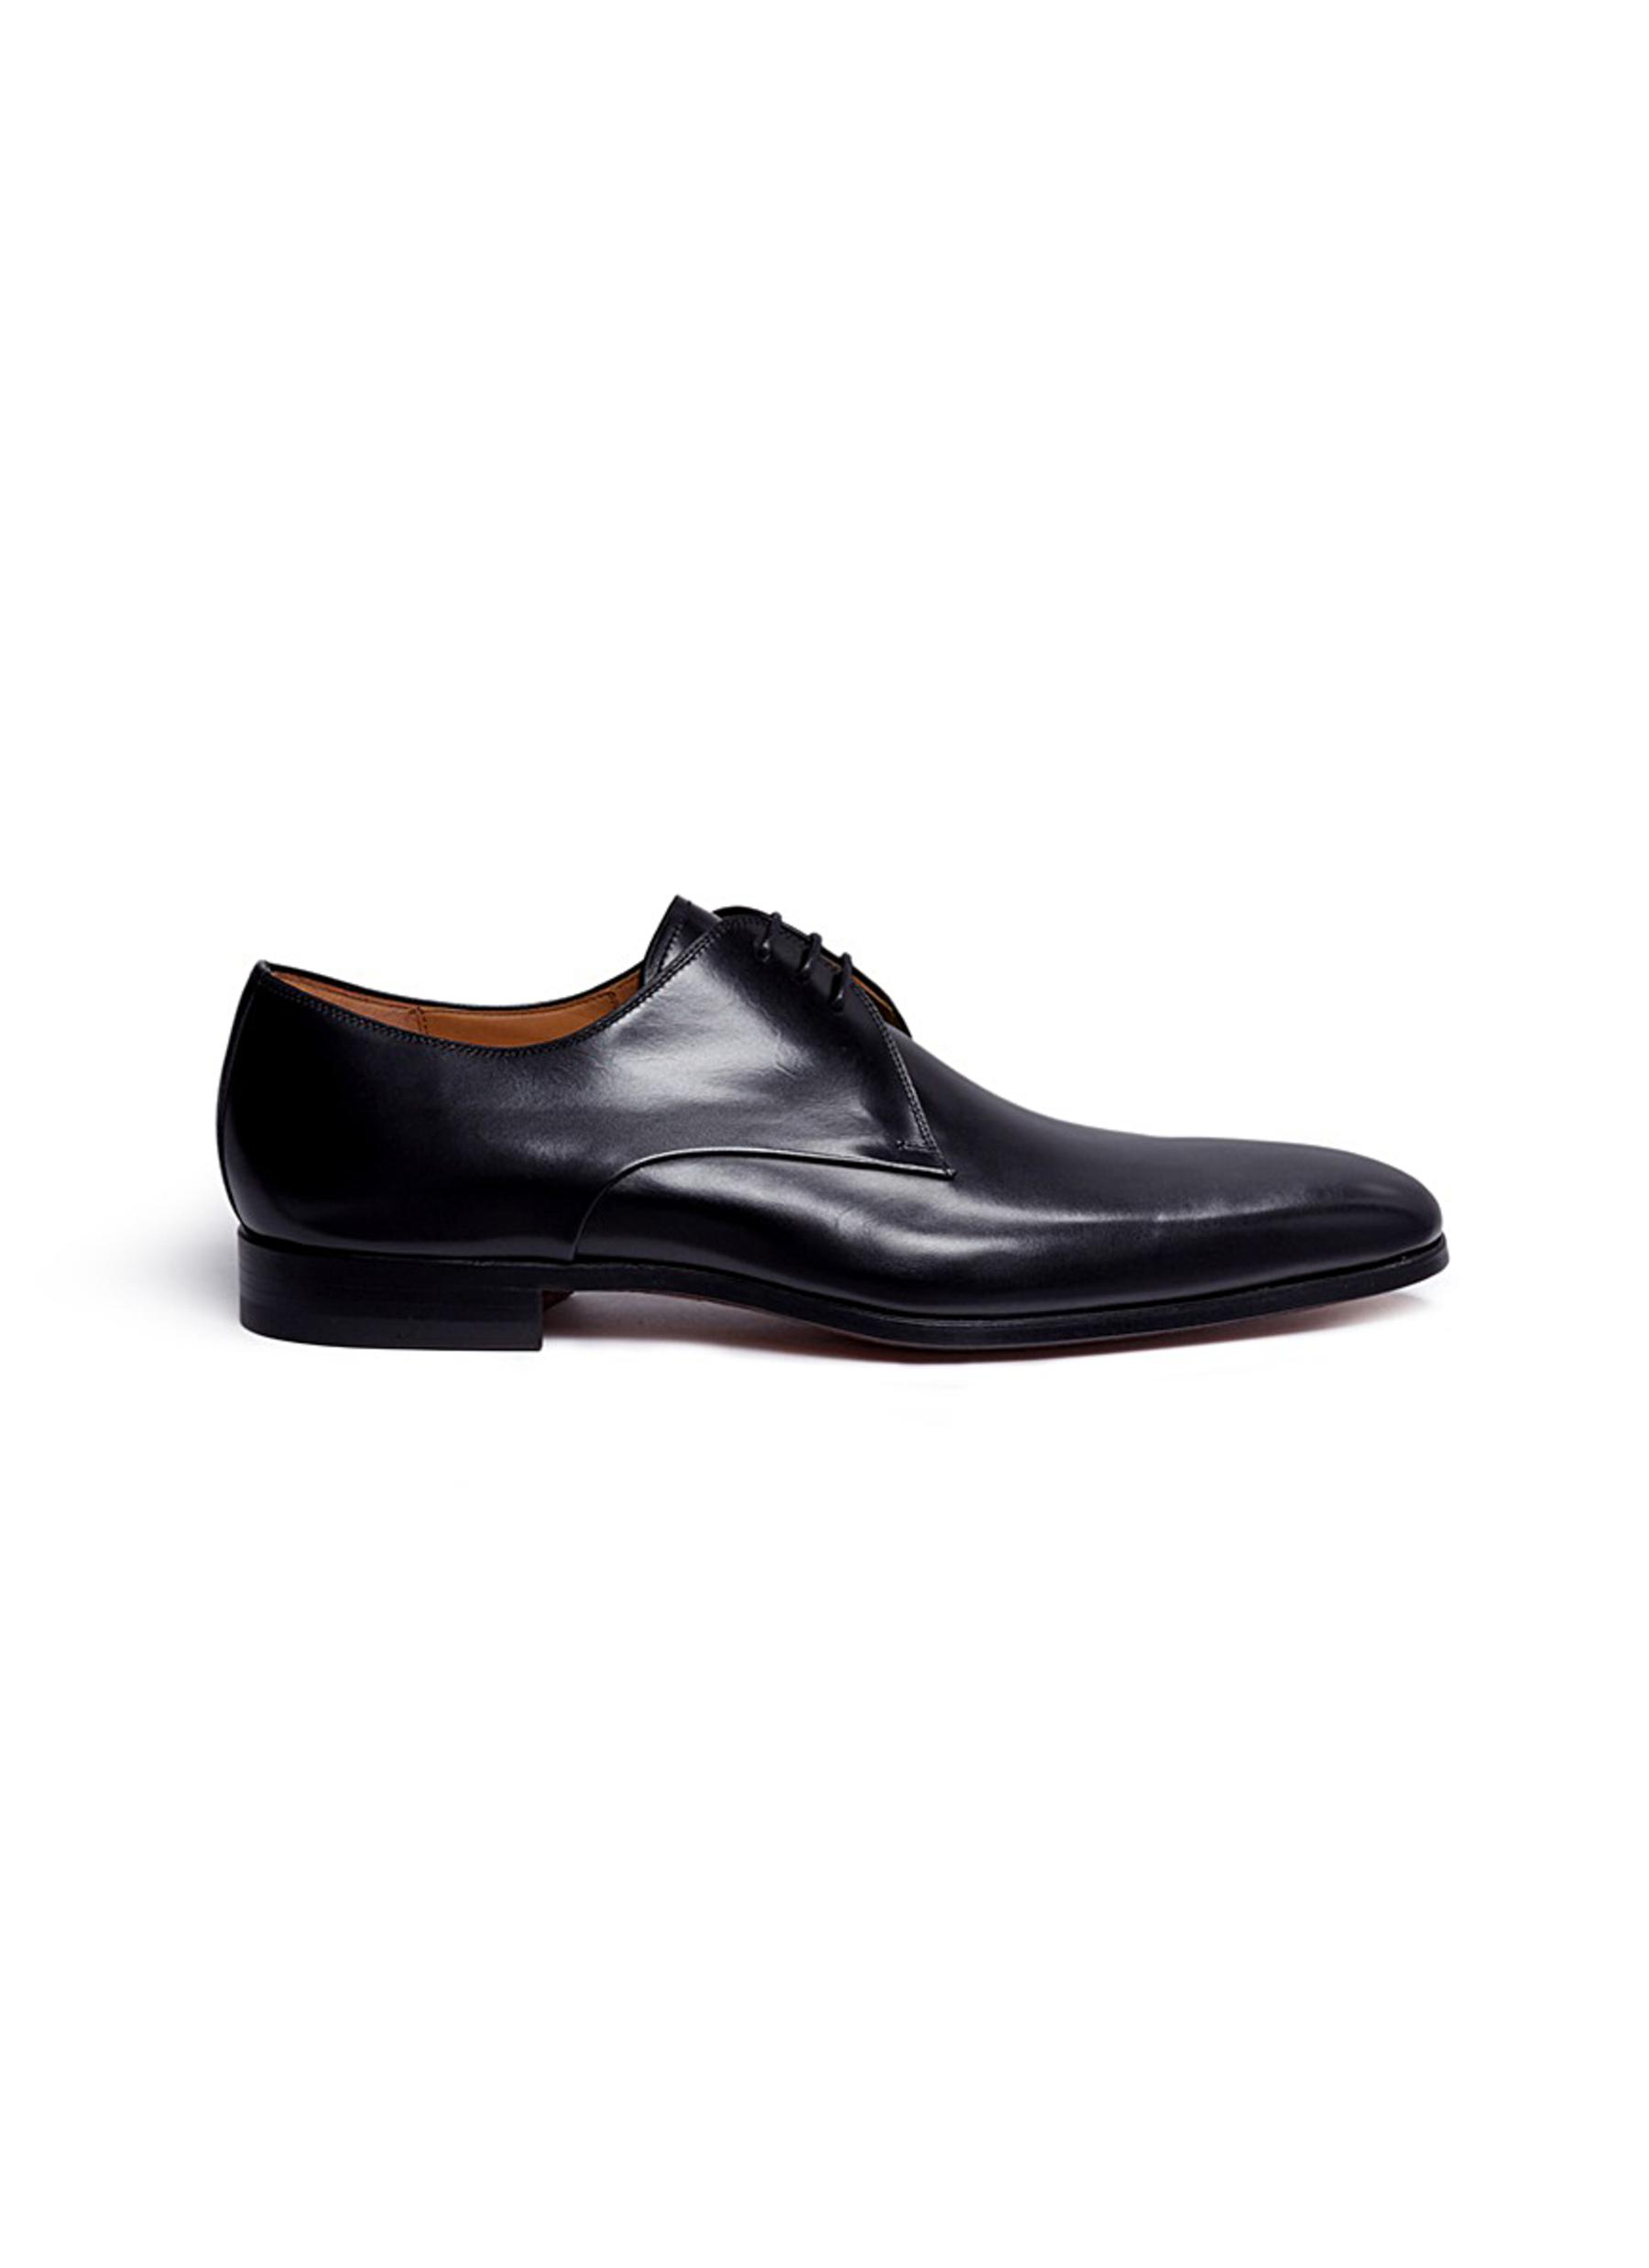 JACOBY CALFSKIN LEATHER DERBIES by Magnanni